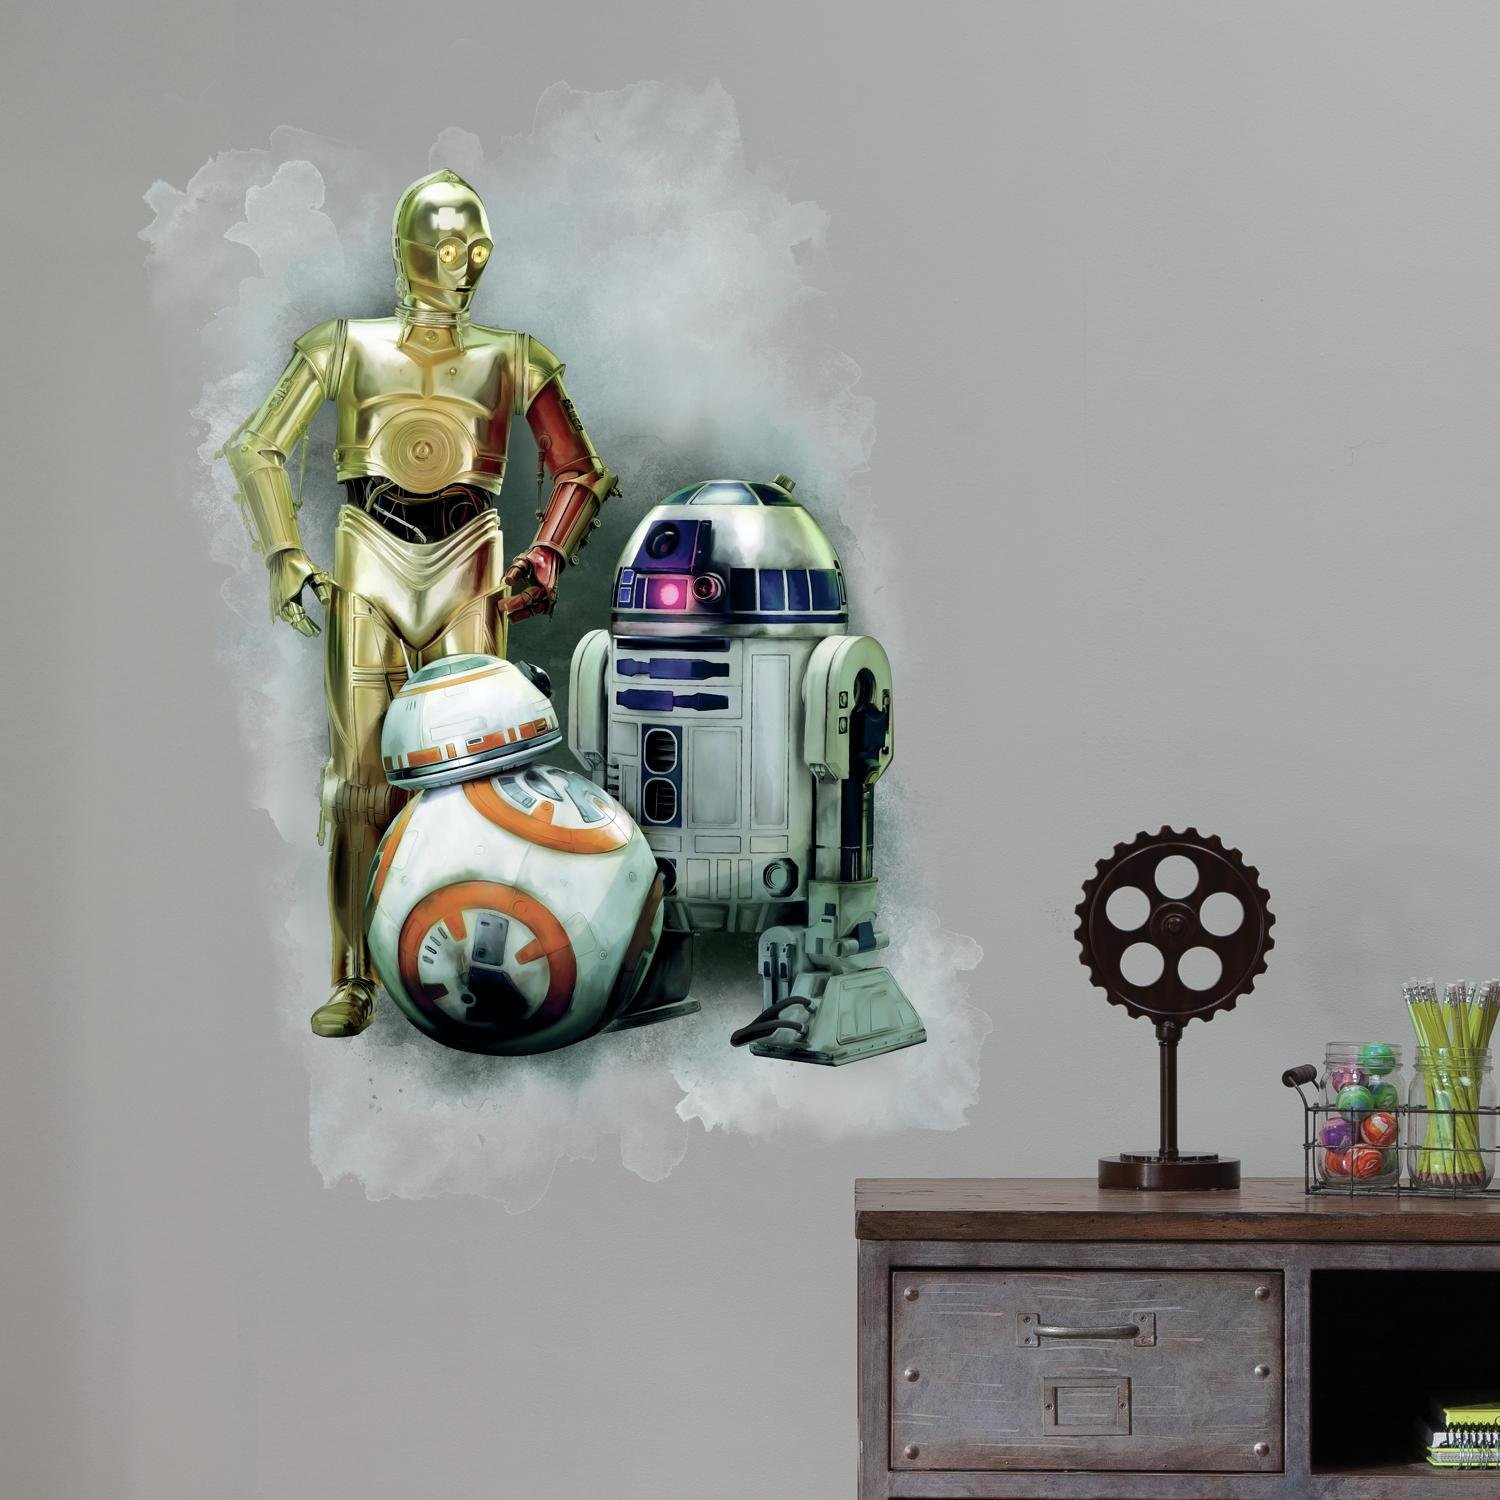 RoomMates Star Wars The Force Awakens Ep VII R2-D2, C-3PO, BB-8 Peel And Stick Giant Wall Graphic